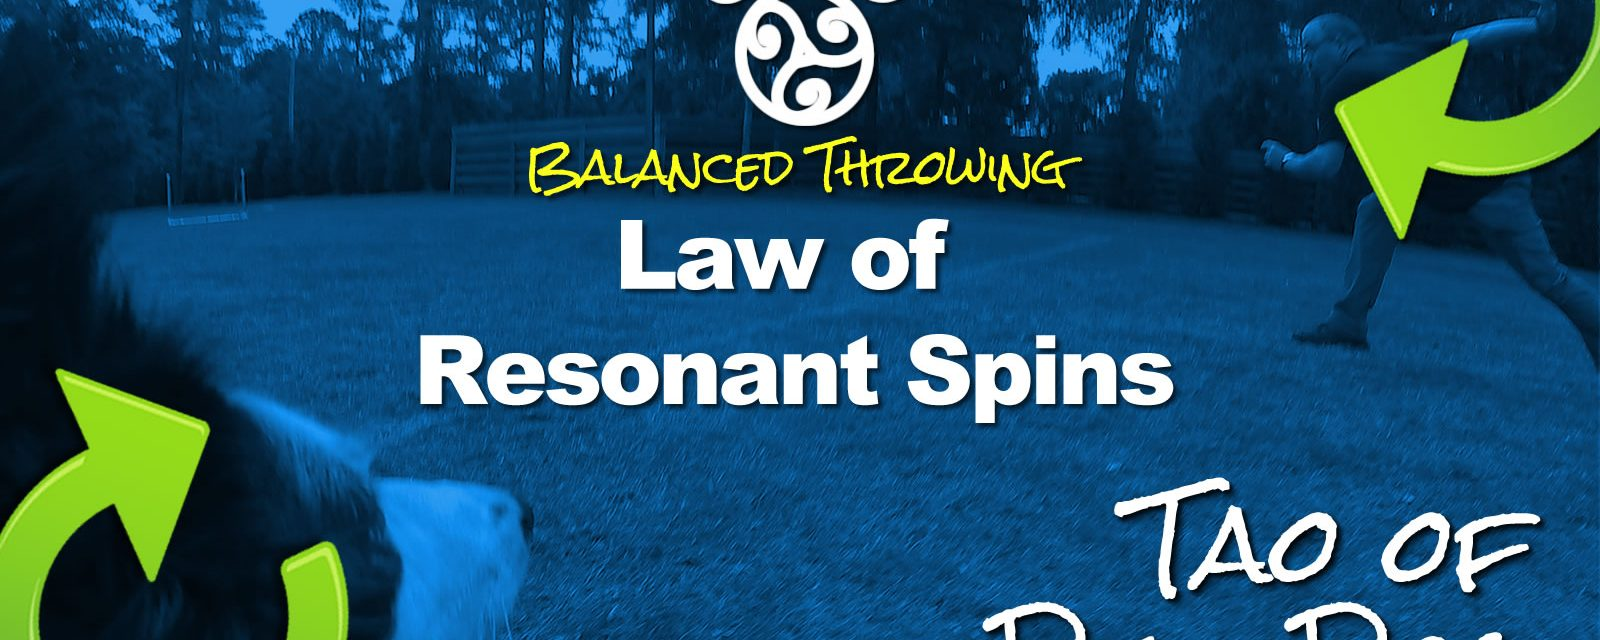 Balanced Disc Dog Throwing: Law of Resonant Spins